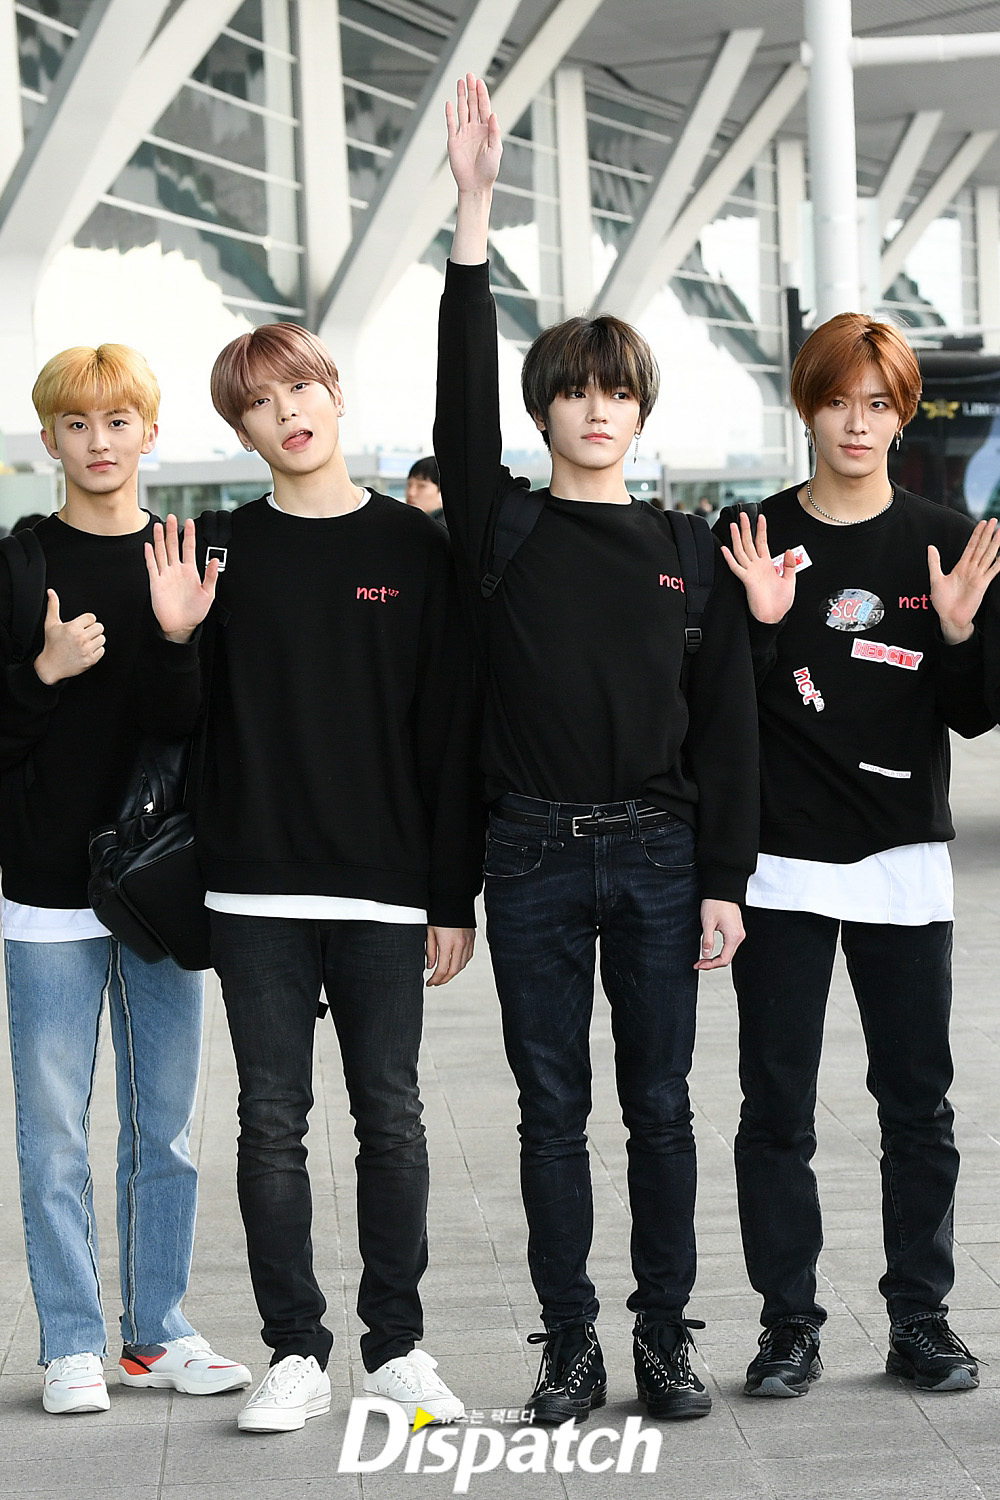 <p> NCT127 Born This World Tour for 16 afternoon, Incheon International Airport, the United States through New York departure.</p><p>Born this day in the Beagle already brimming with reviews. Covering of the Camera, and V posing and departure.</p><p>Sculpture Walk.</p><p>Charisma, put</p><p>The Ruff equivalent of a visual</p>